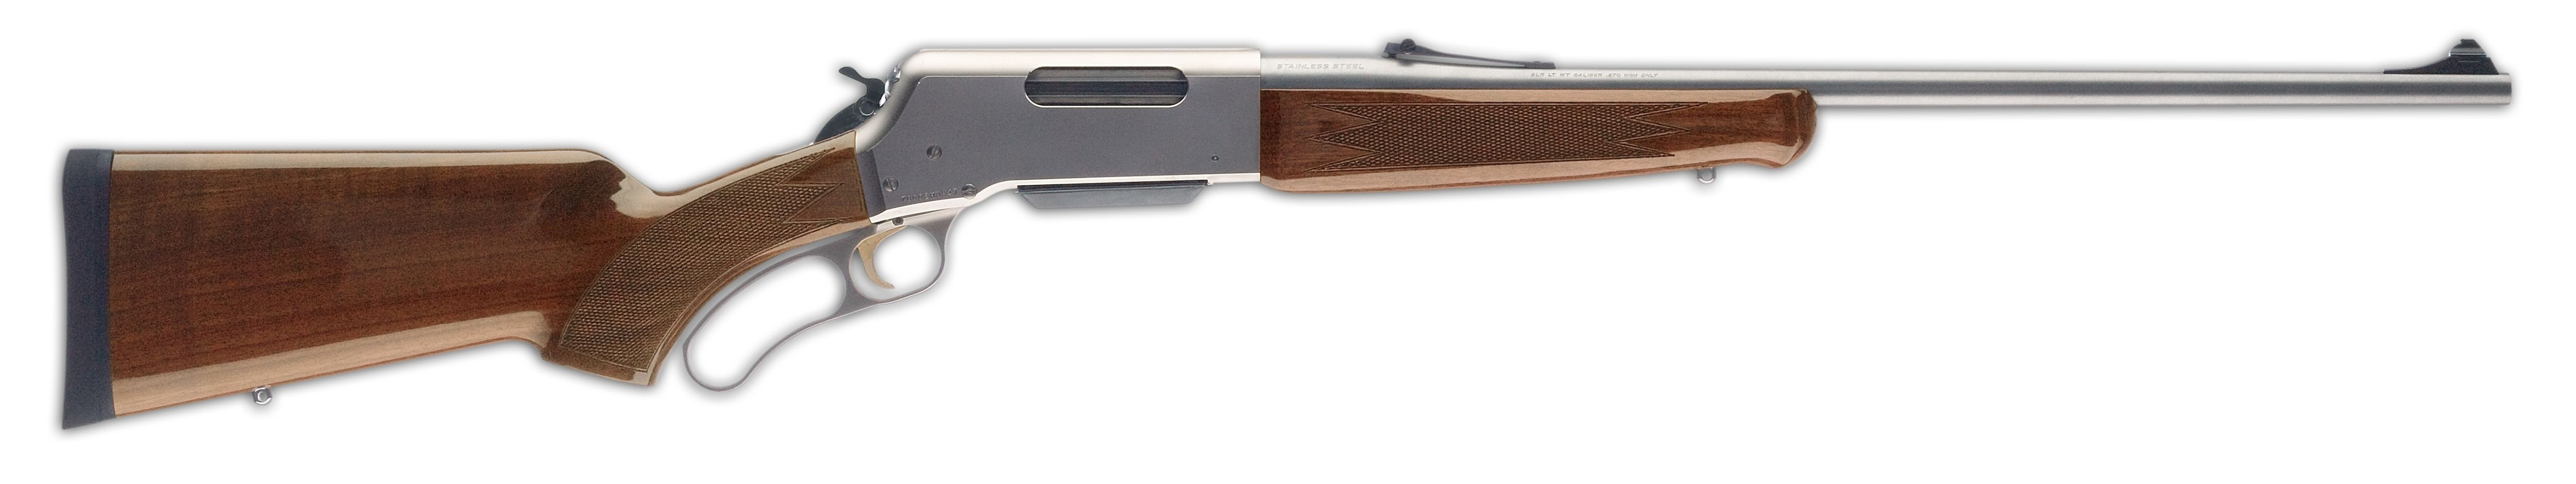 Browning BLR Light Weight Stainless PG